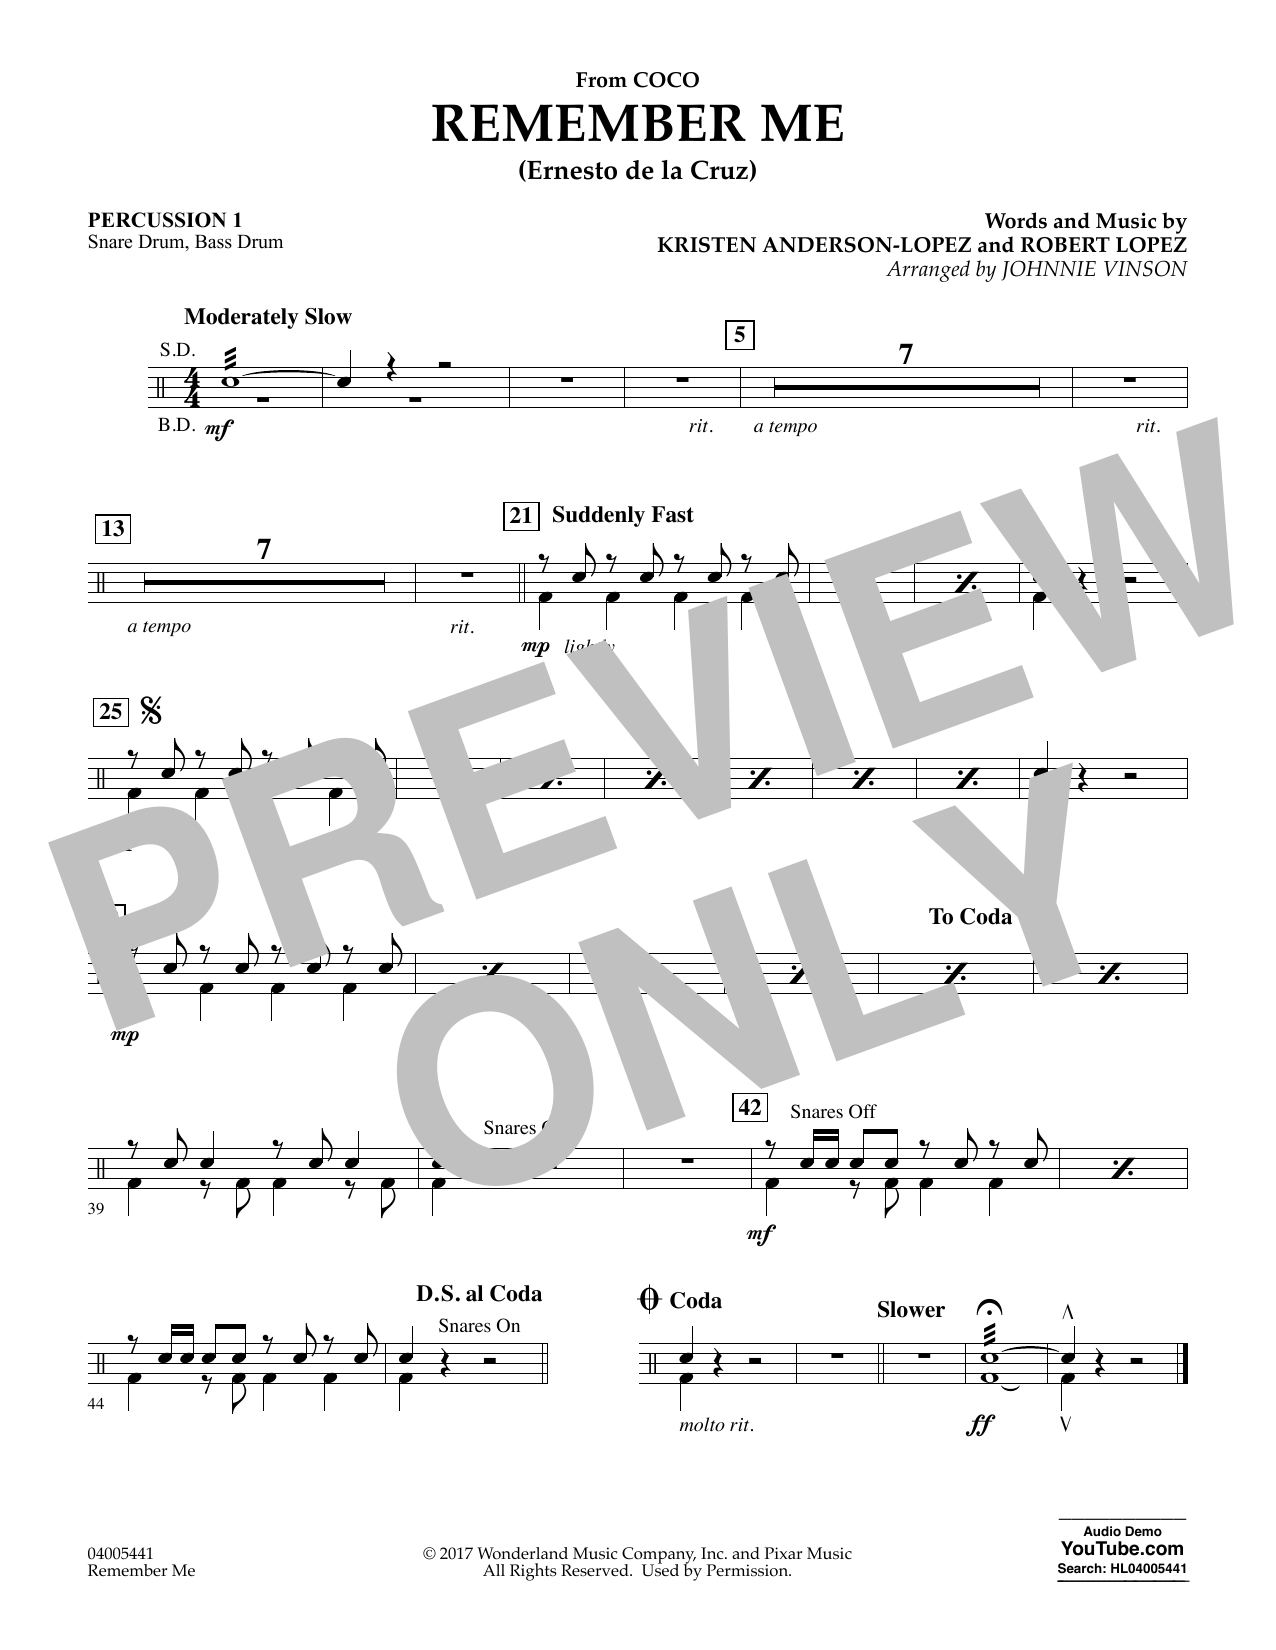 Kristen Anderson-Lopez & Robert Lopez Remember Me (from Coco) (arr. Johnnie Vinson) - Percussion 1 sheet music notes and chords. Download Printable PDF.